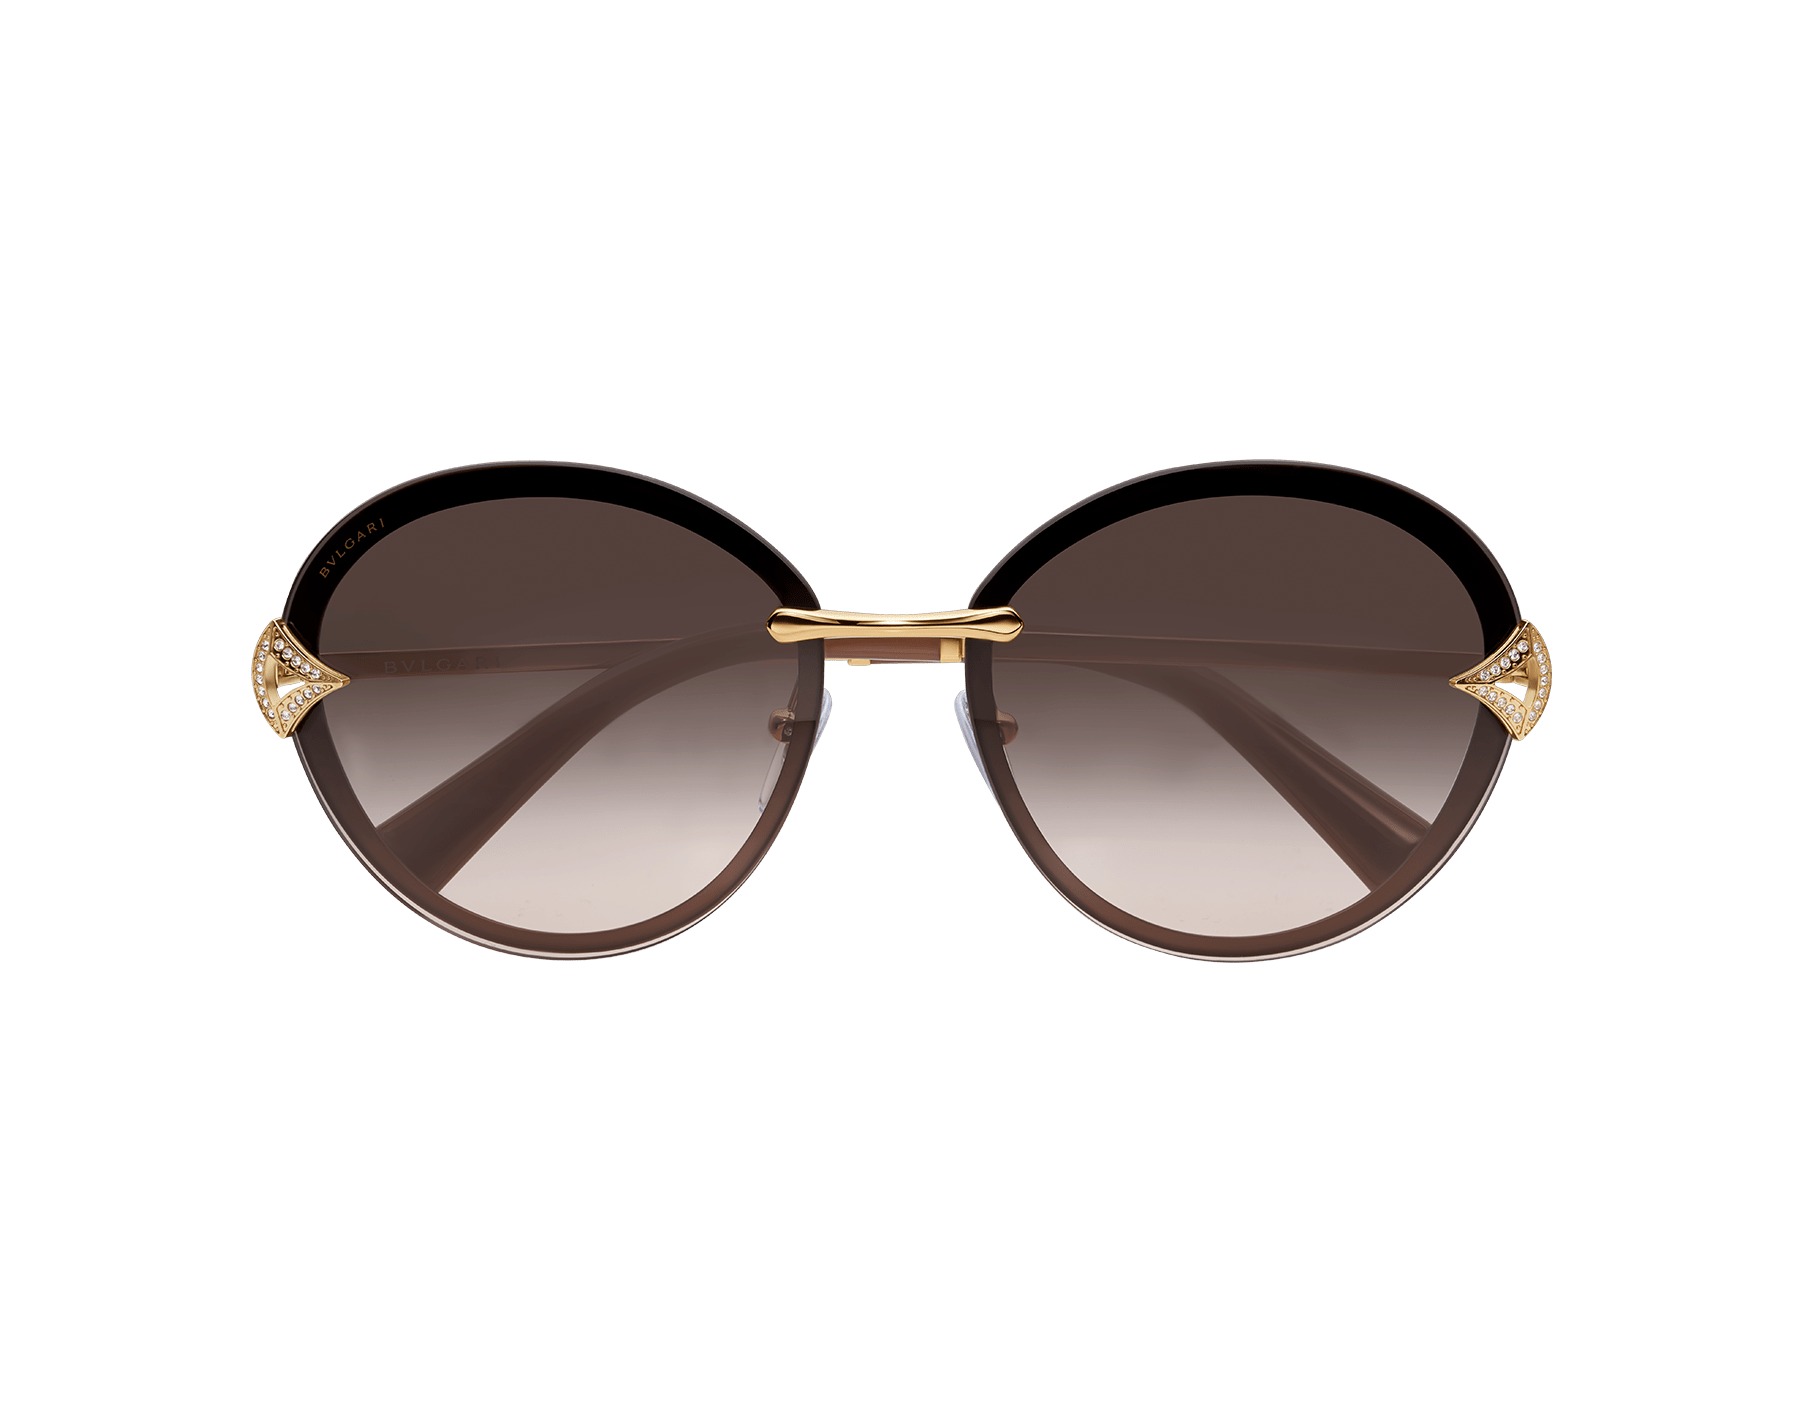 DIVAS' DREAM oval metal sunglasses. 903396 image 2